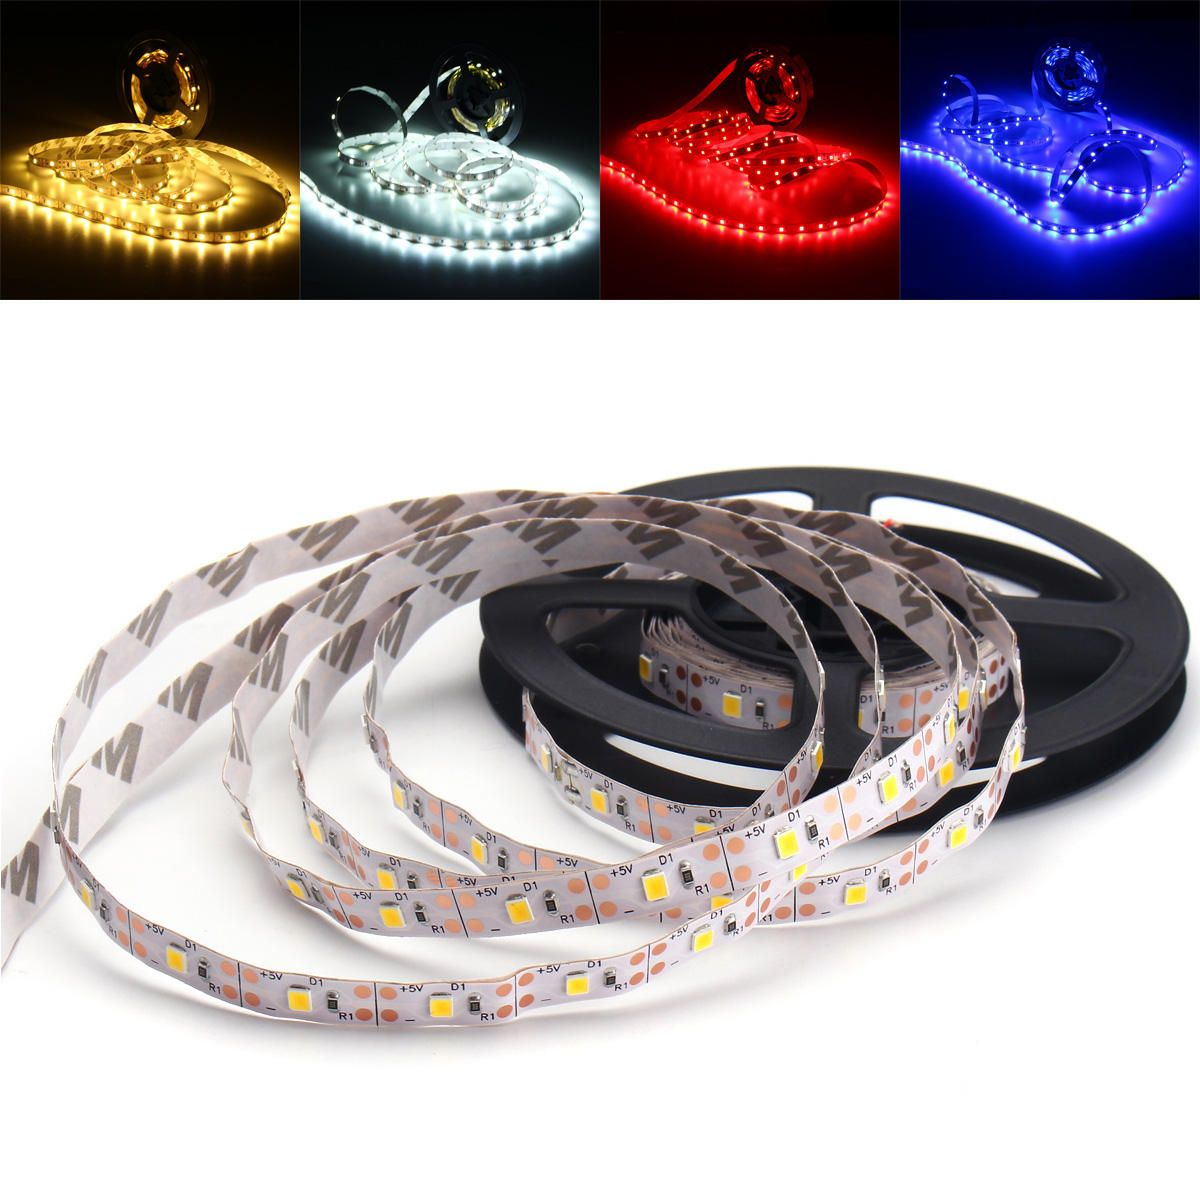 4m smd 2835 non waterproof usb 240leds strip tv lighting pc 4m smd 2835 non waterproof usb 240leds strip tv lighting pc backlight for holiday dc5v mozeypictures Choice Image